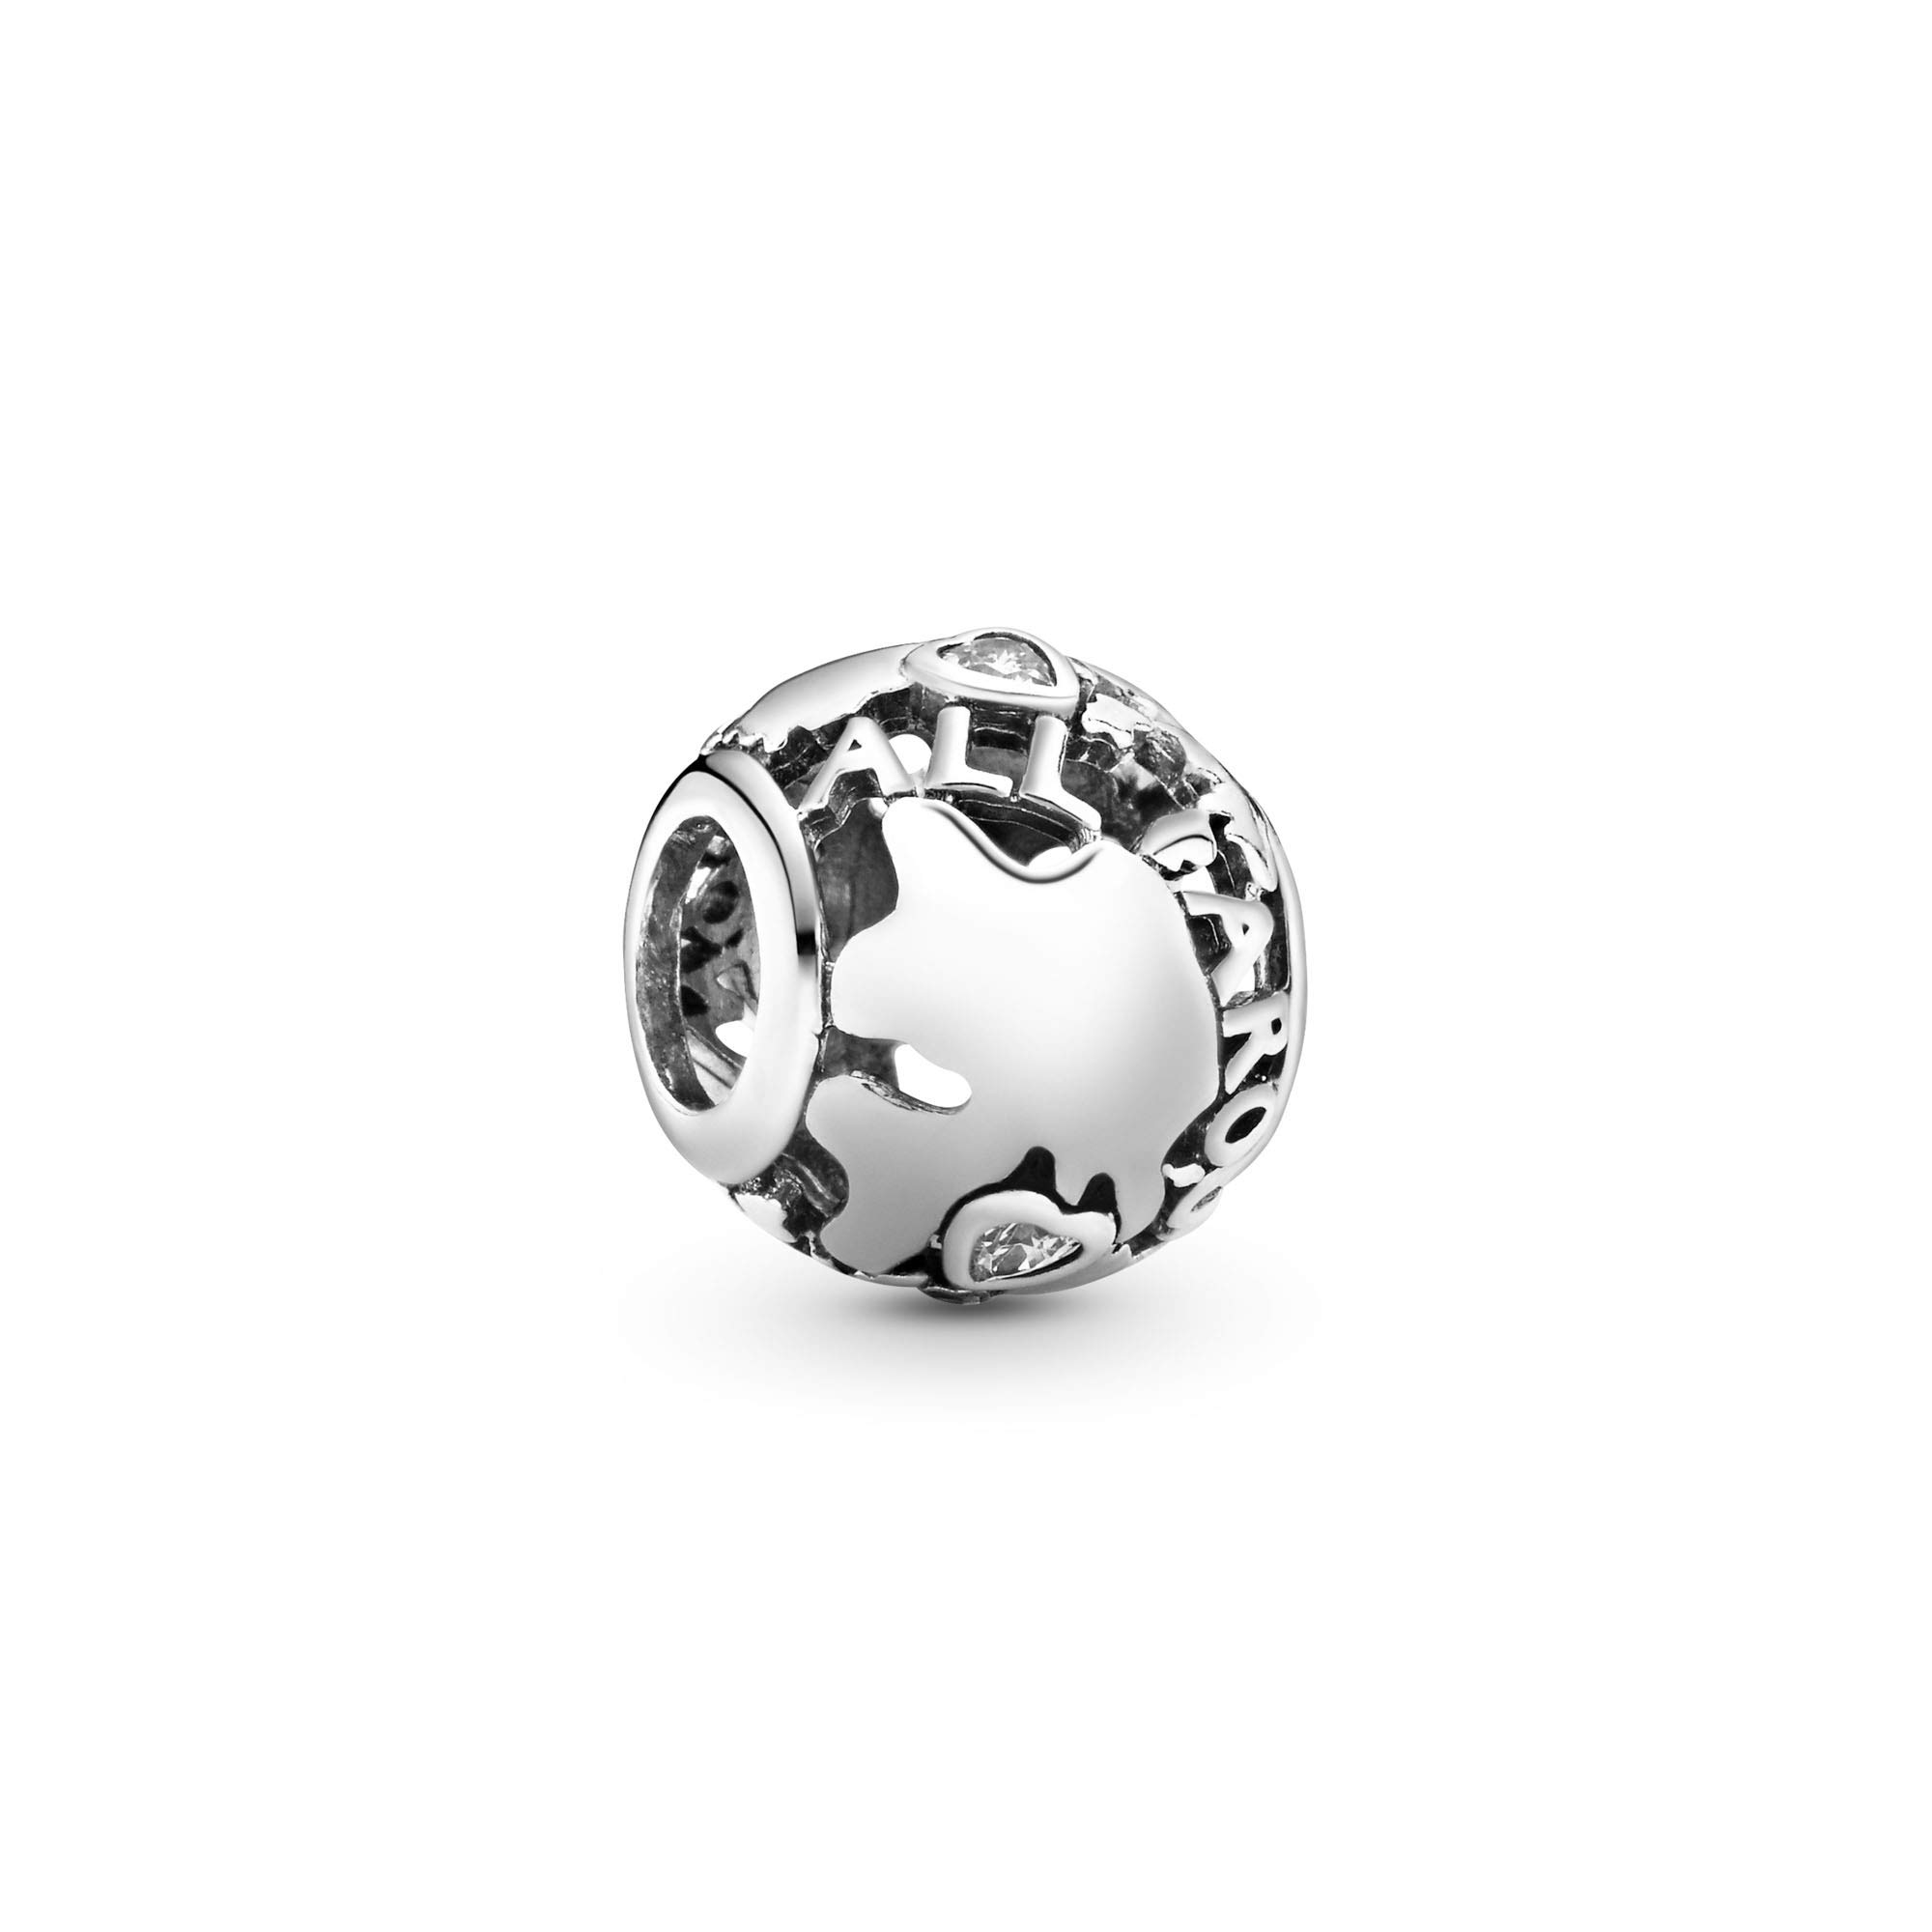 Jewelry Around the World Openwork Cubic Zirconia Charm in Sterling Silver